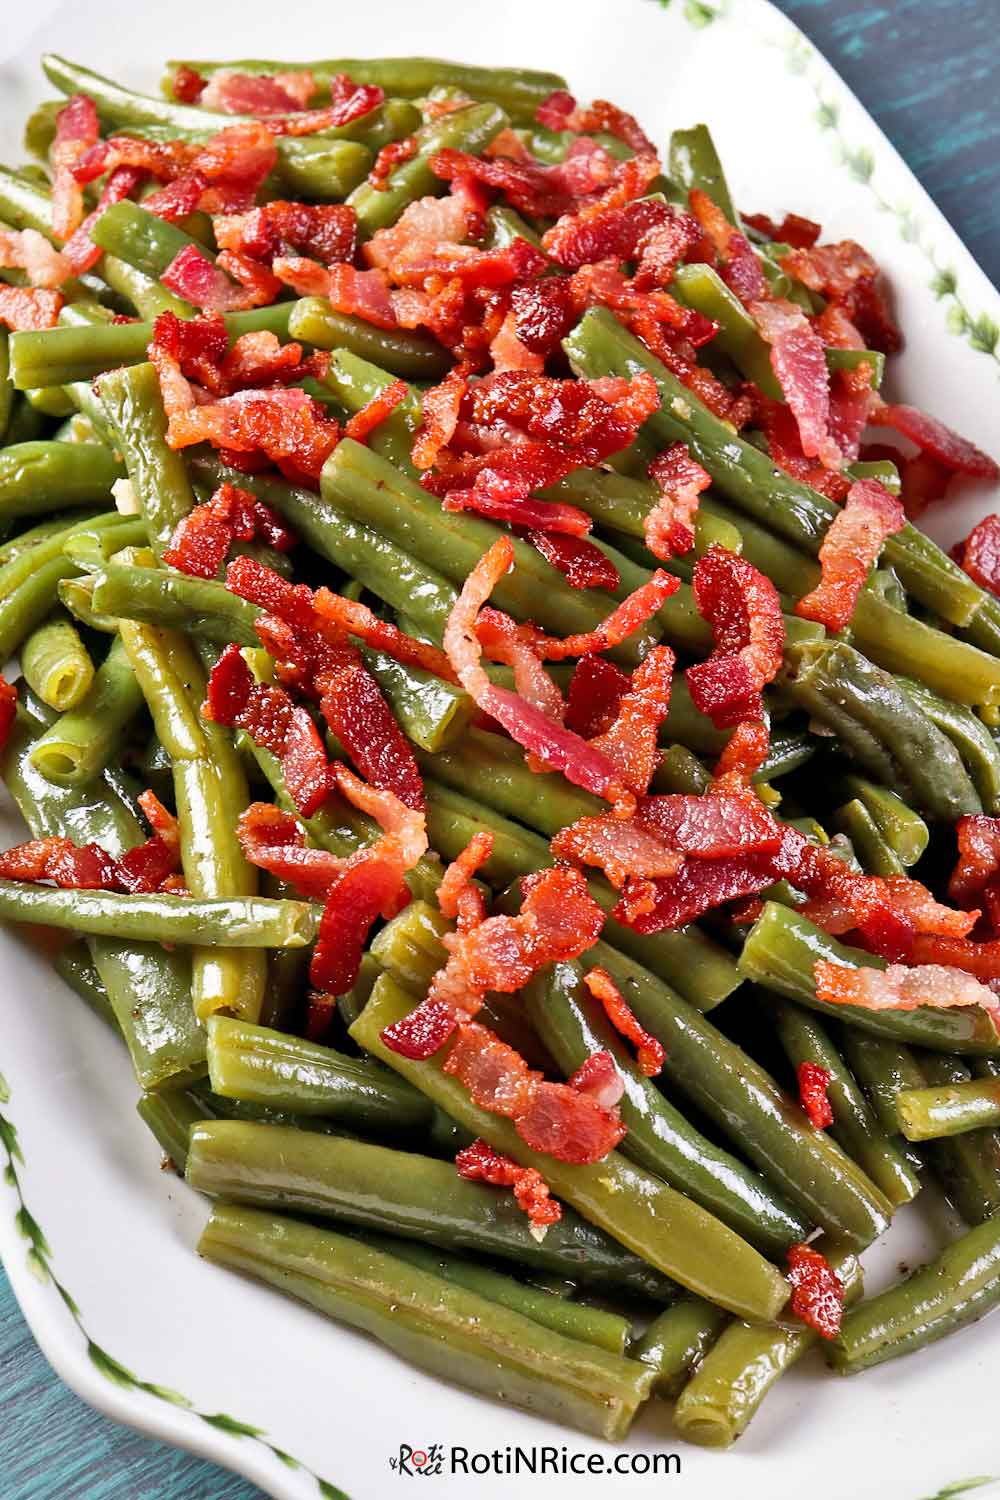 Green Beans with Bacon - an easy and tasty side dish.